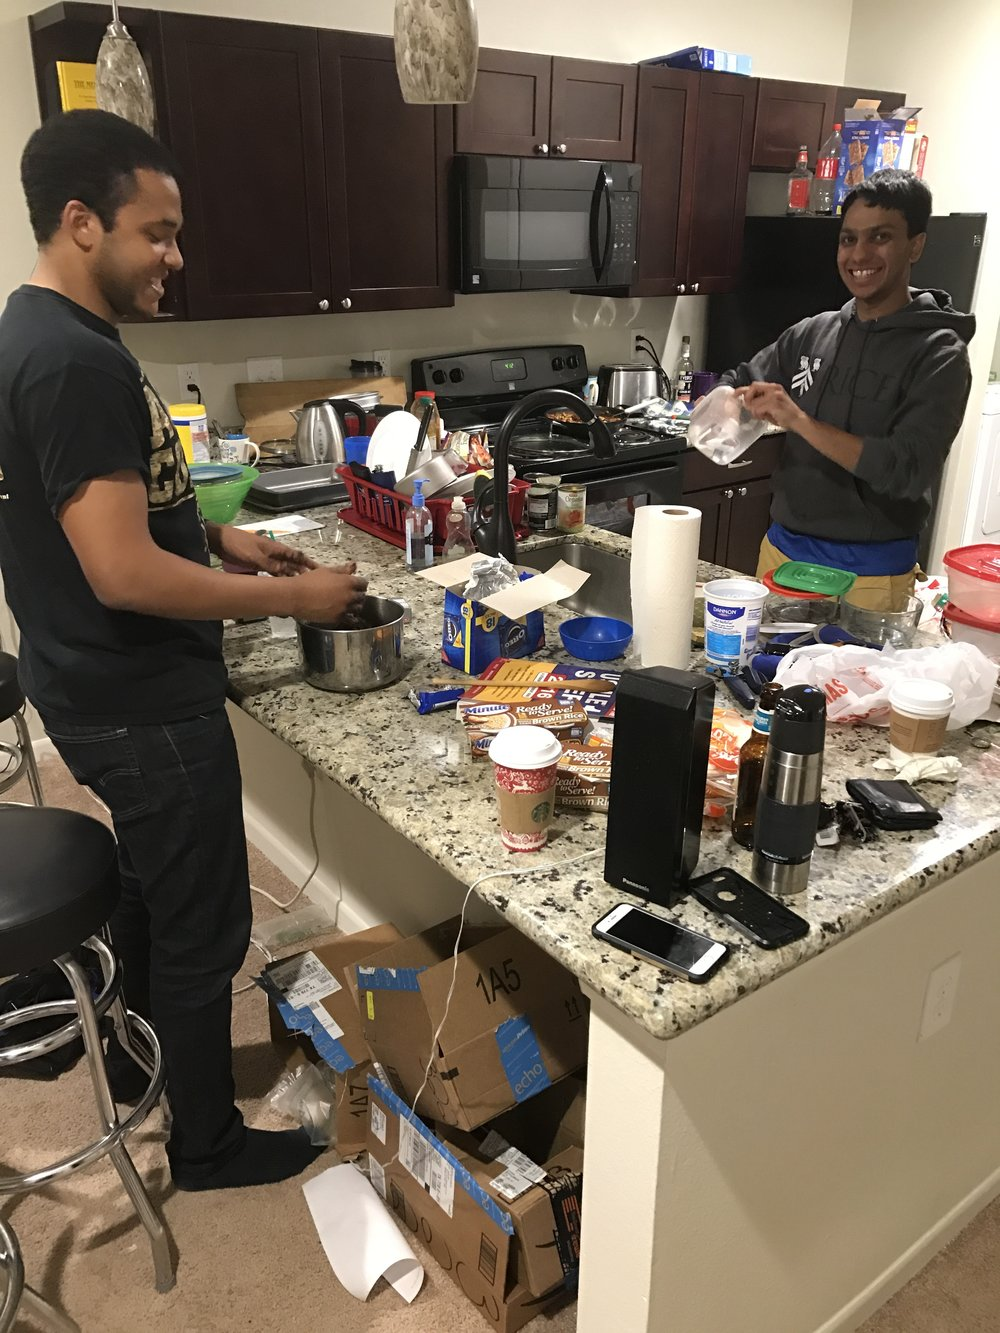 Jason Mallet (left) and Nitin Agrawal (right) preparing their meal. Photos provided by Nitin Agrawal, M1.